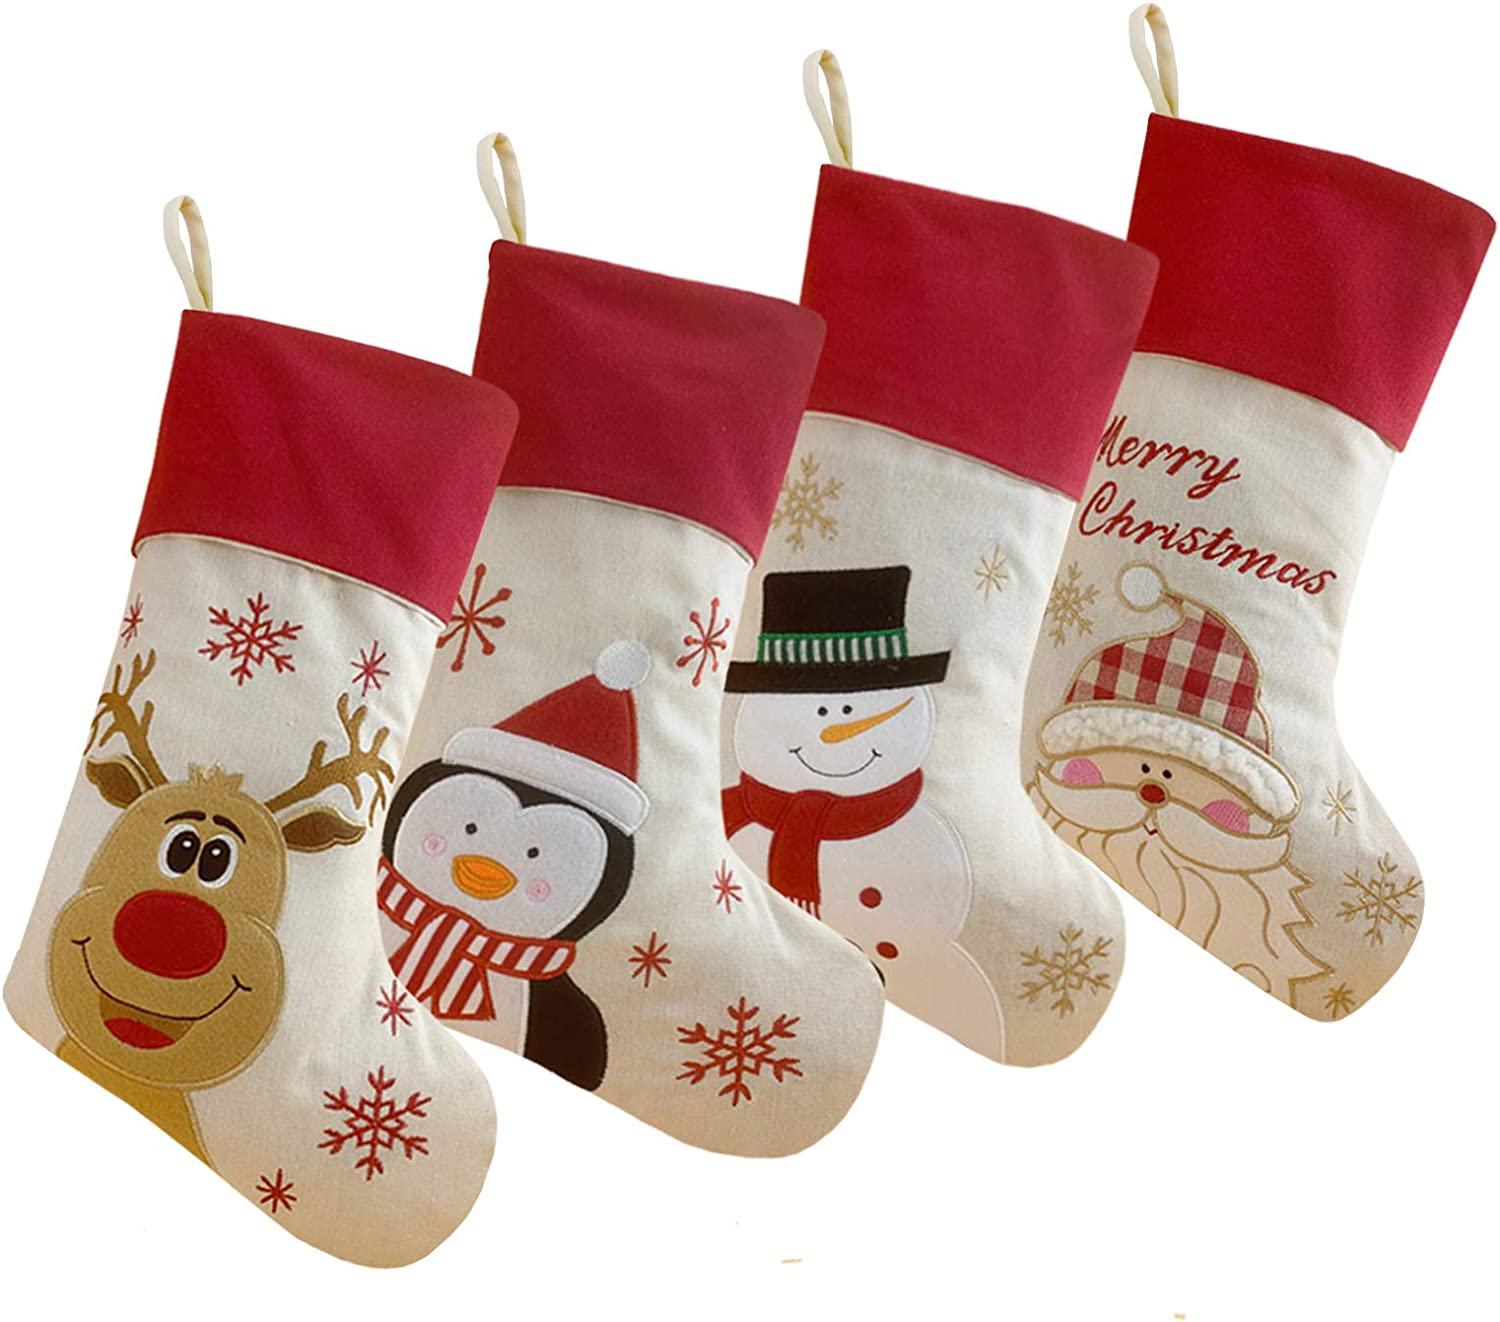 MNSZLKF Embroidered Christmas Stockings Set of 4 Santa, Snowman, Reindeer,Penguin, Home Decorations Gifts forFamily Party Decorations